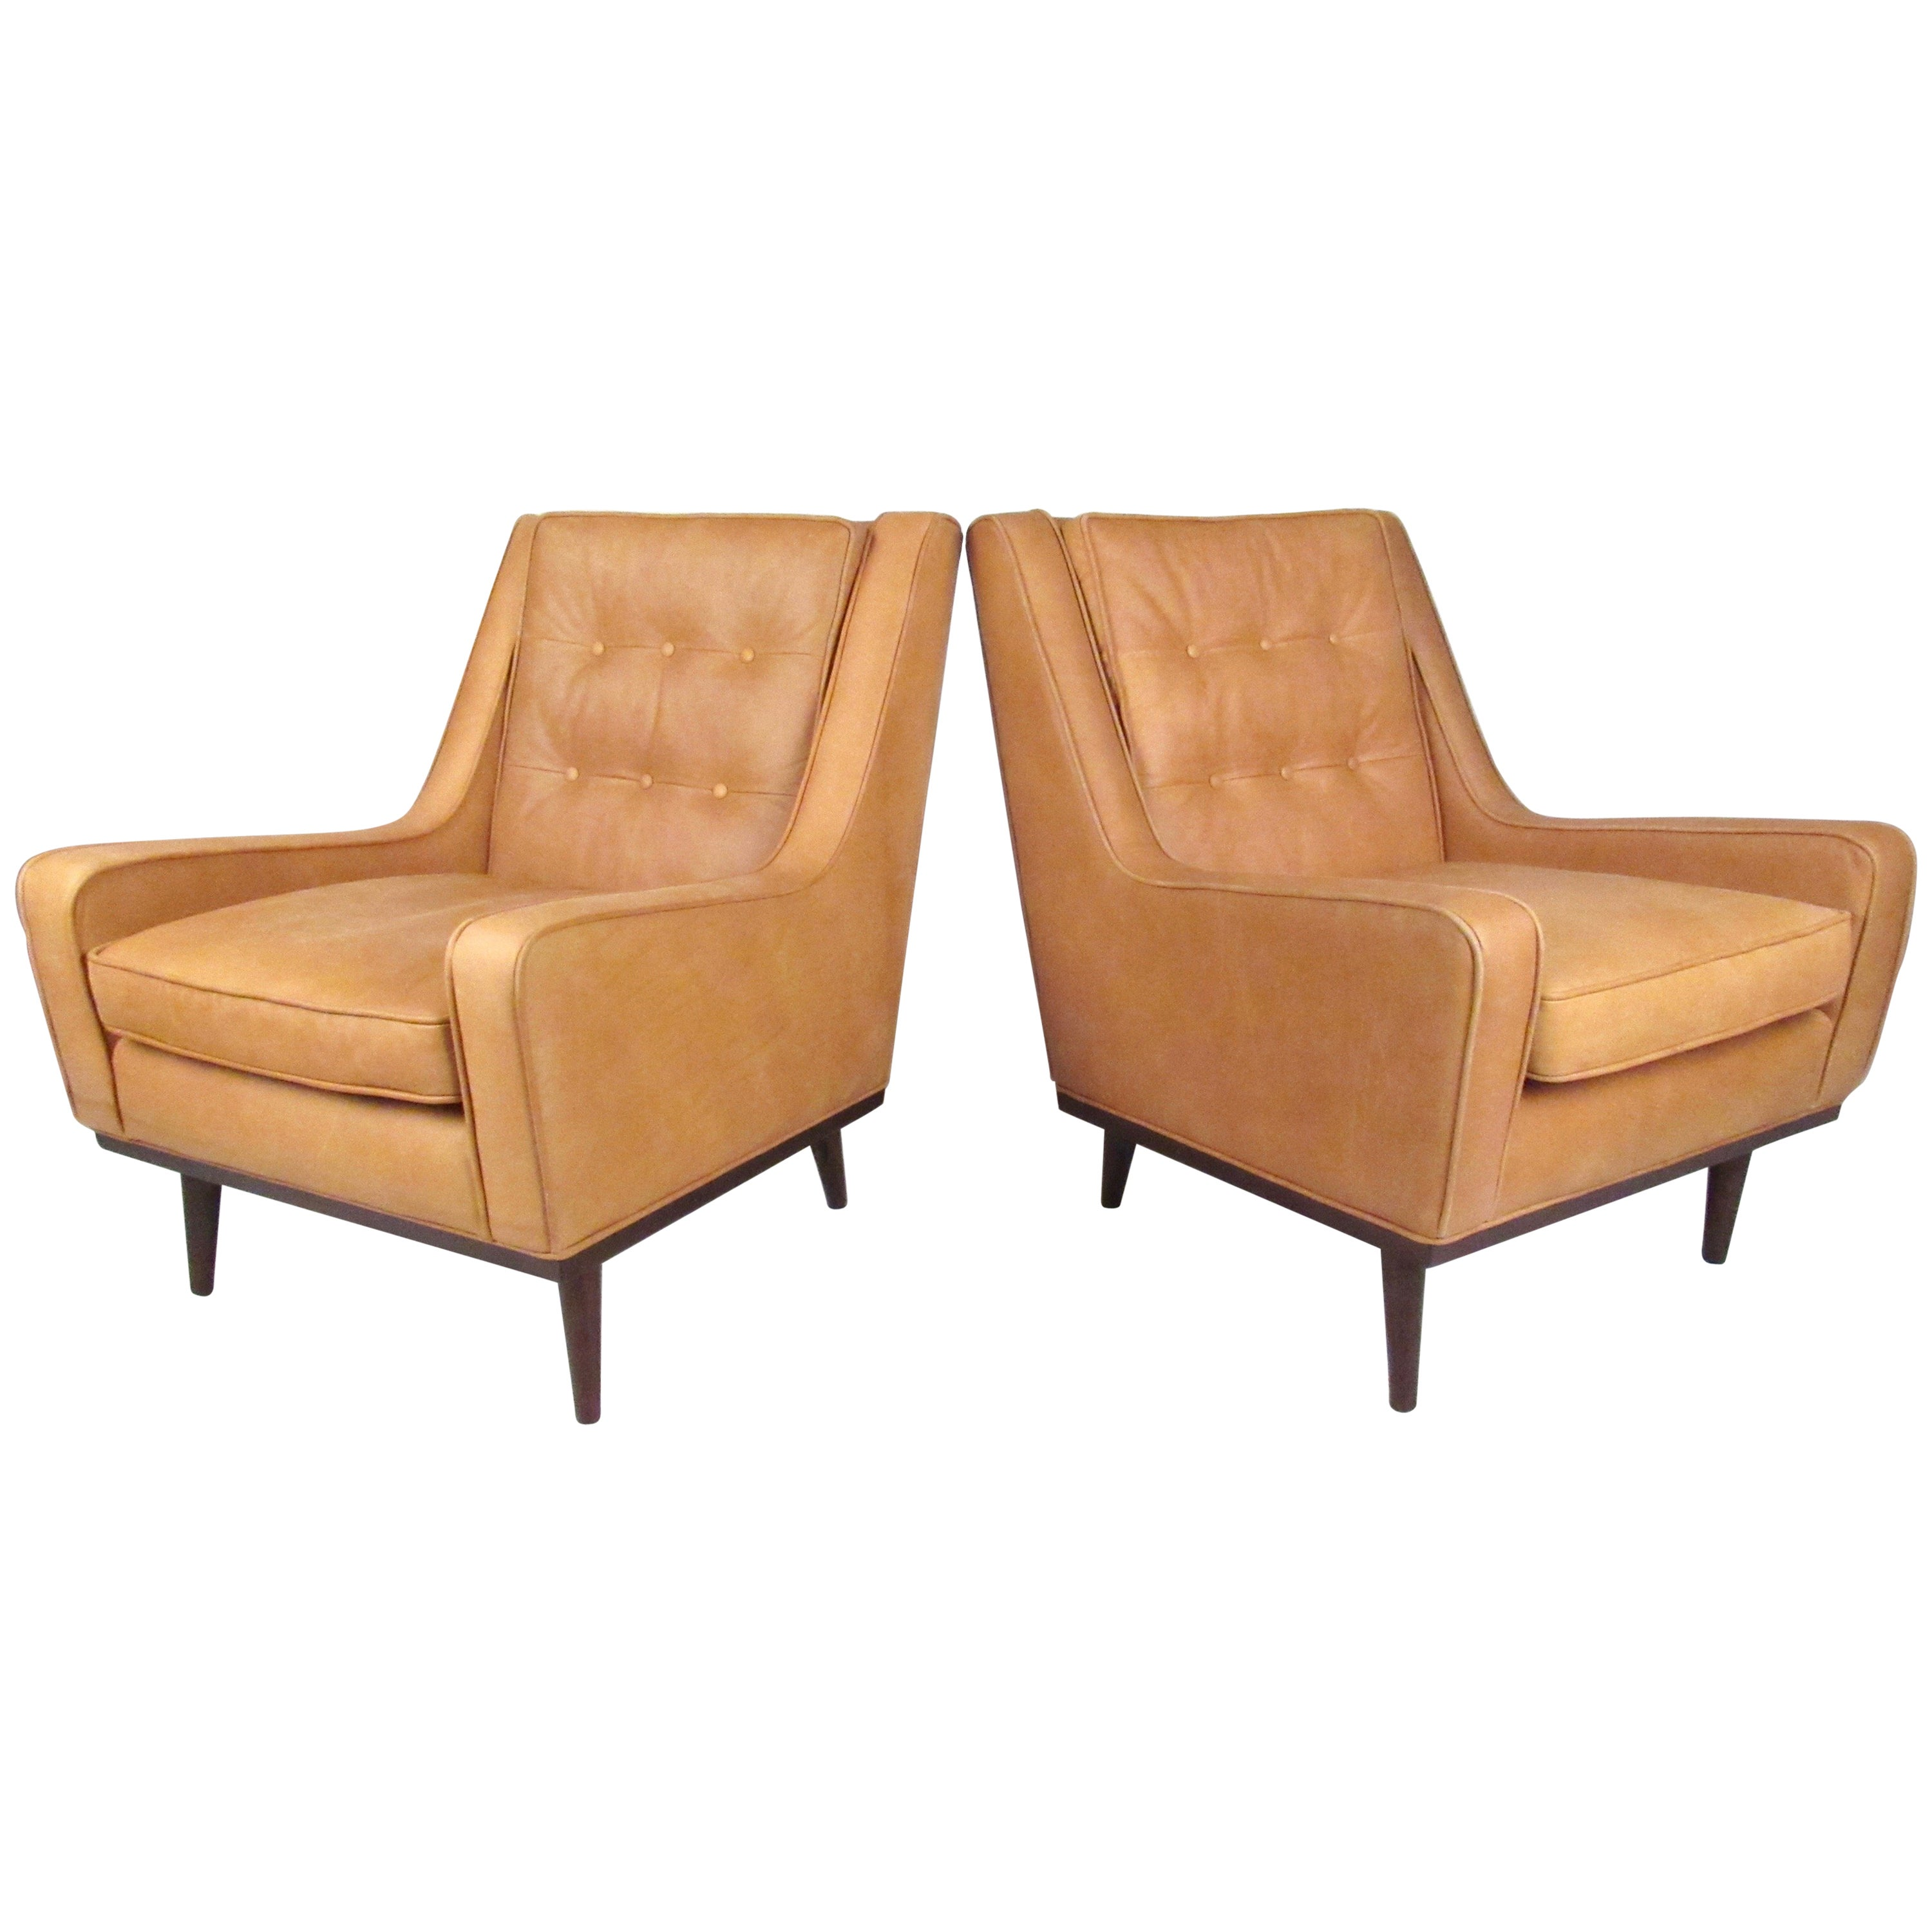 Pair of Stylish Modern Tufted Leather Lounge Chairs